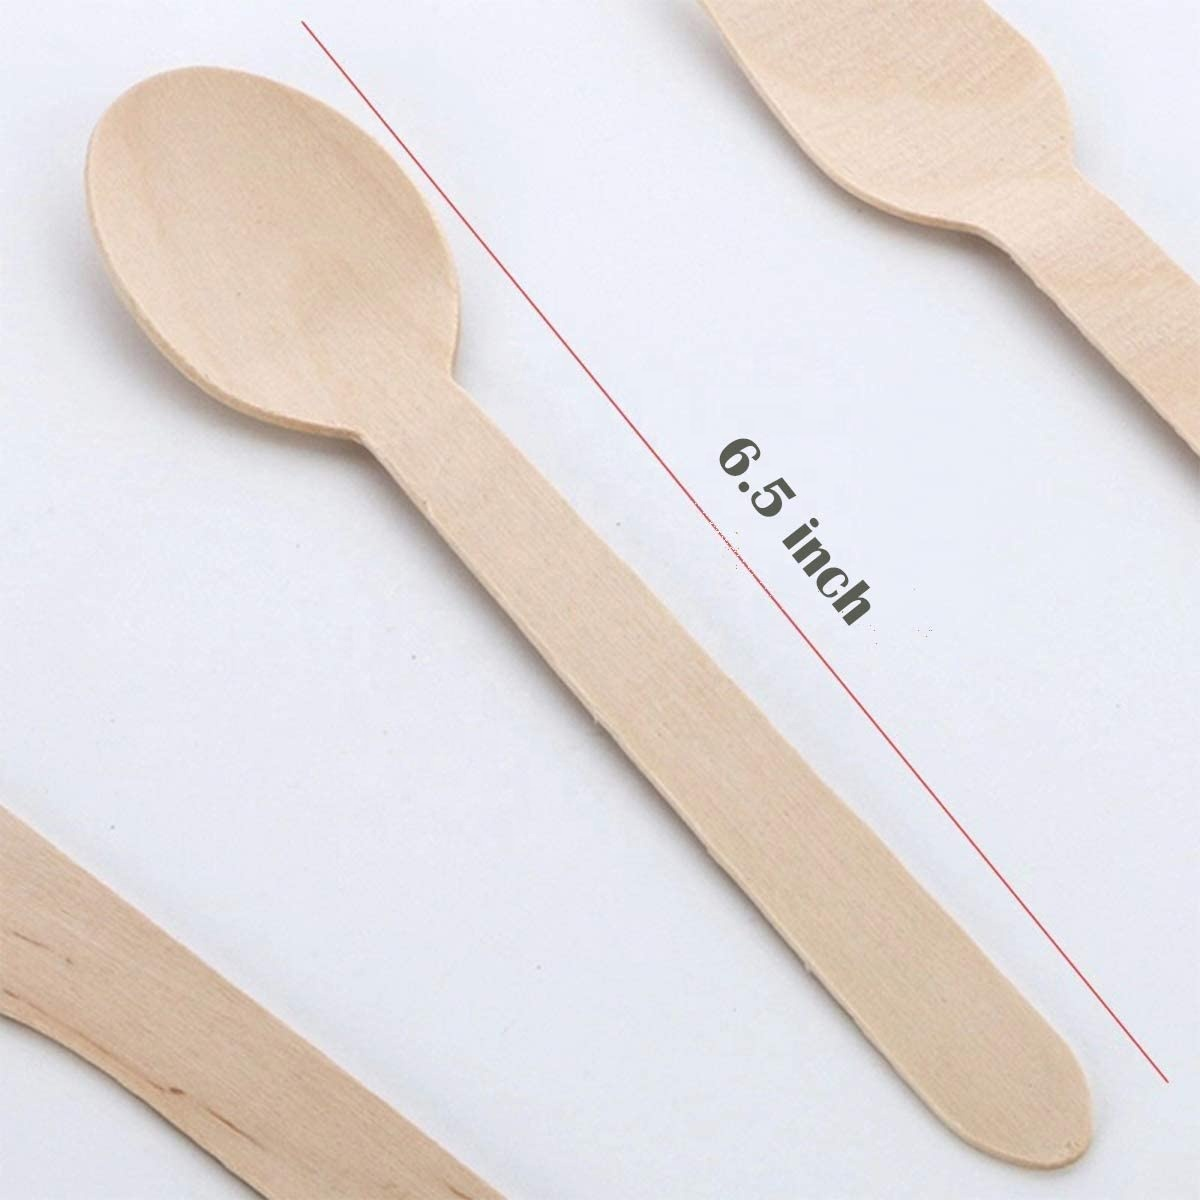 Yachen manufacturer Customizable Disposable Eco Friendly Biodegradable Compostable Wood Spoon for salad